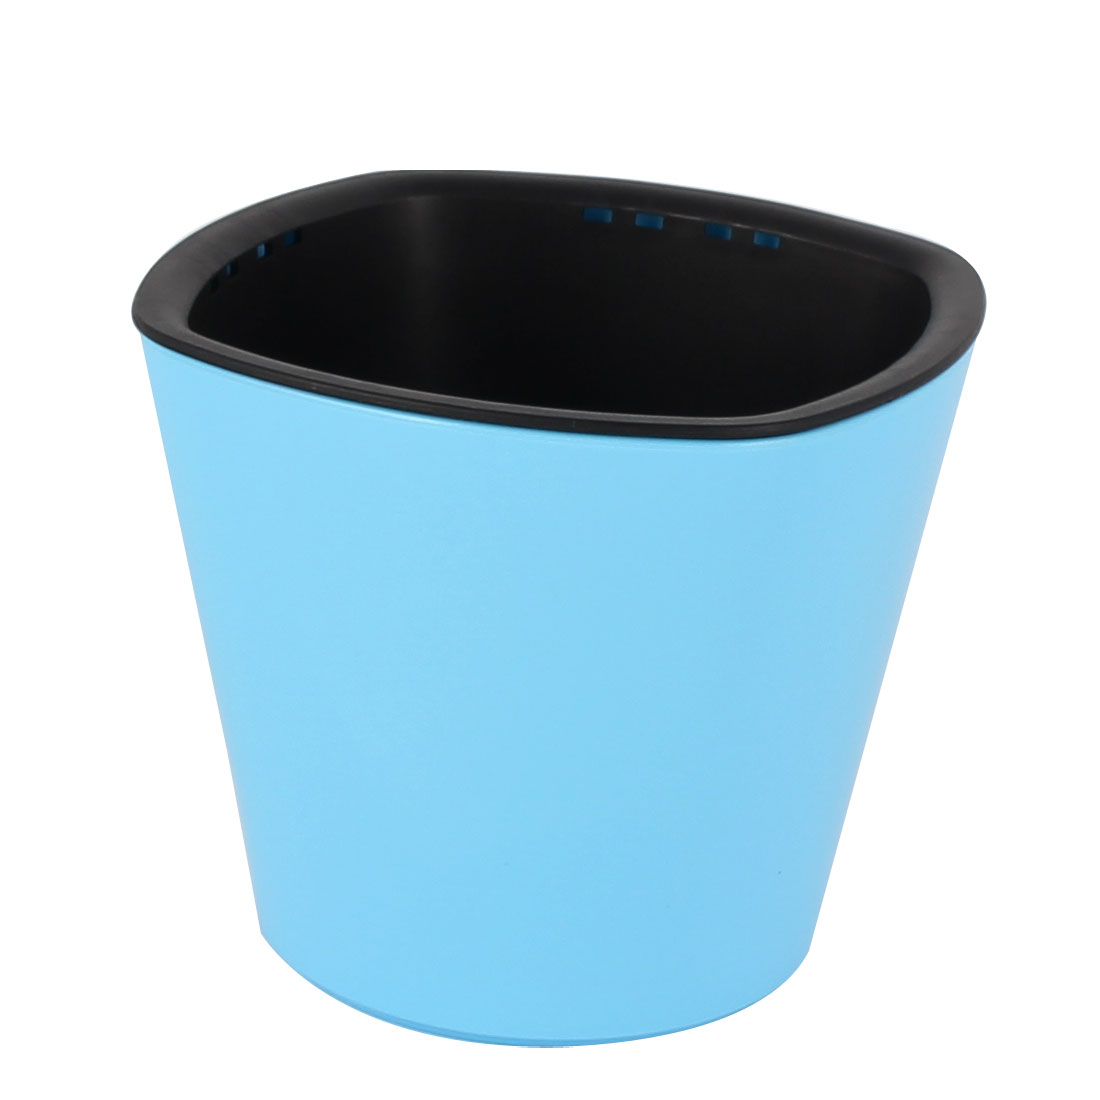 Home Office Plastic Rectangle Shape Self Watering Planter Flowerpot Light Blue